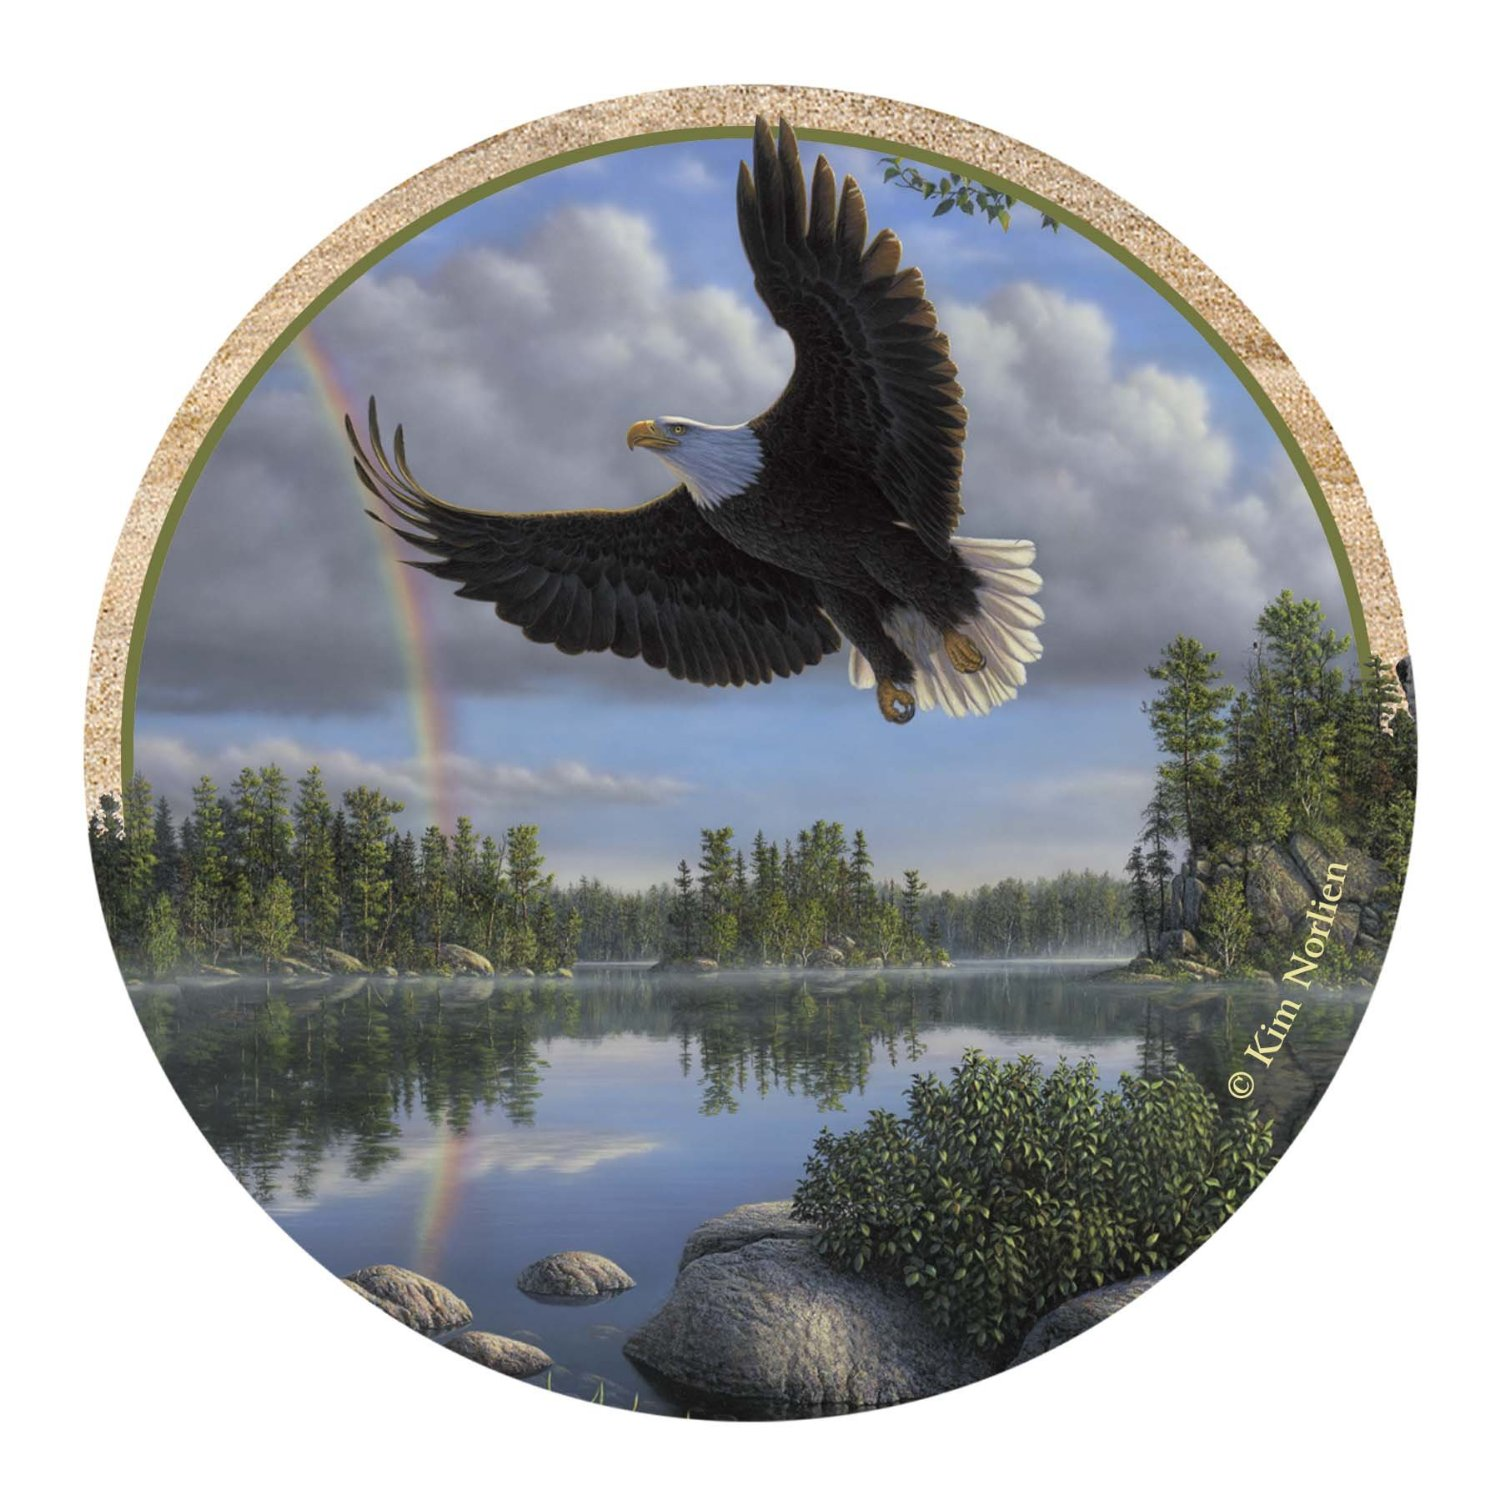 Thirstystone Drink Coaster Set, Eagle